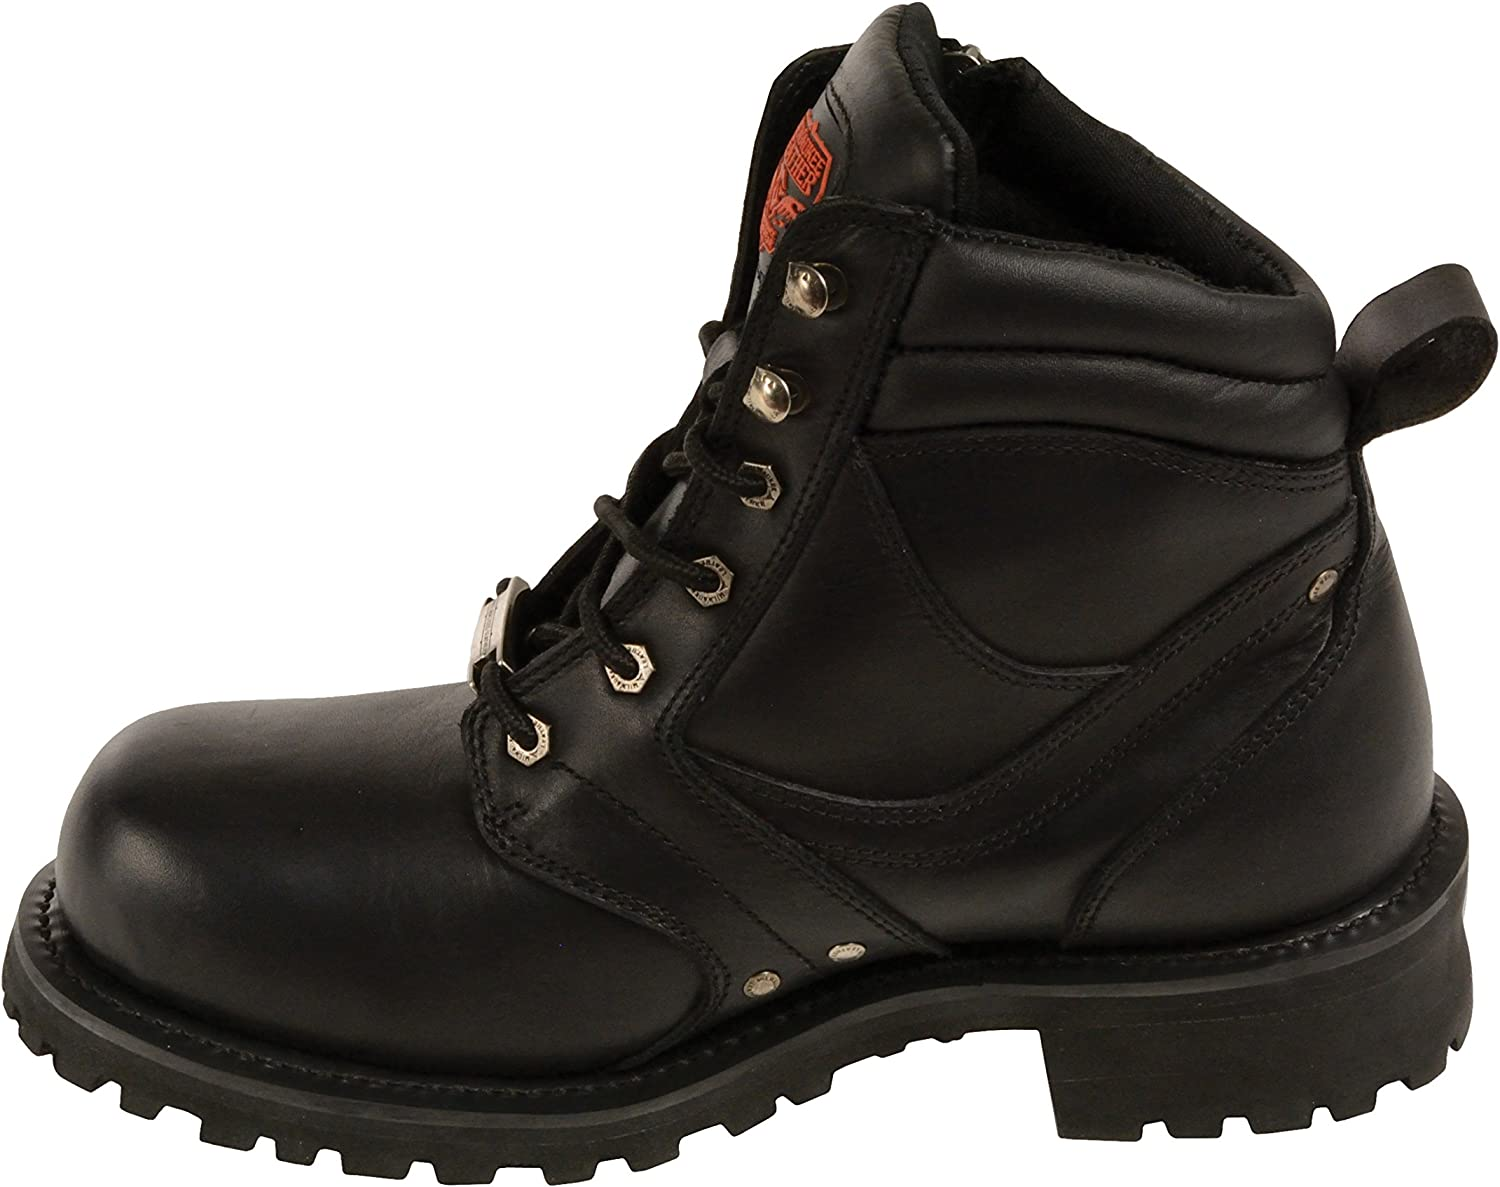 Milwaukee Men\'s Boots with Zip And Laces (Black, Size 13) 818U2BLRiMELSL1500_